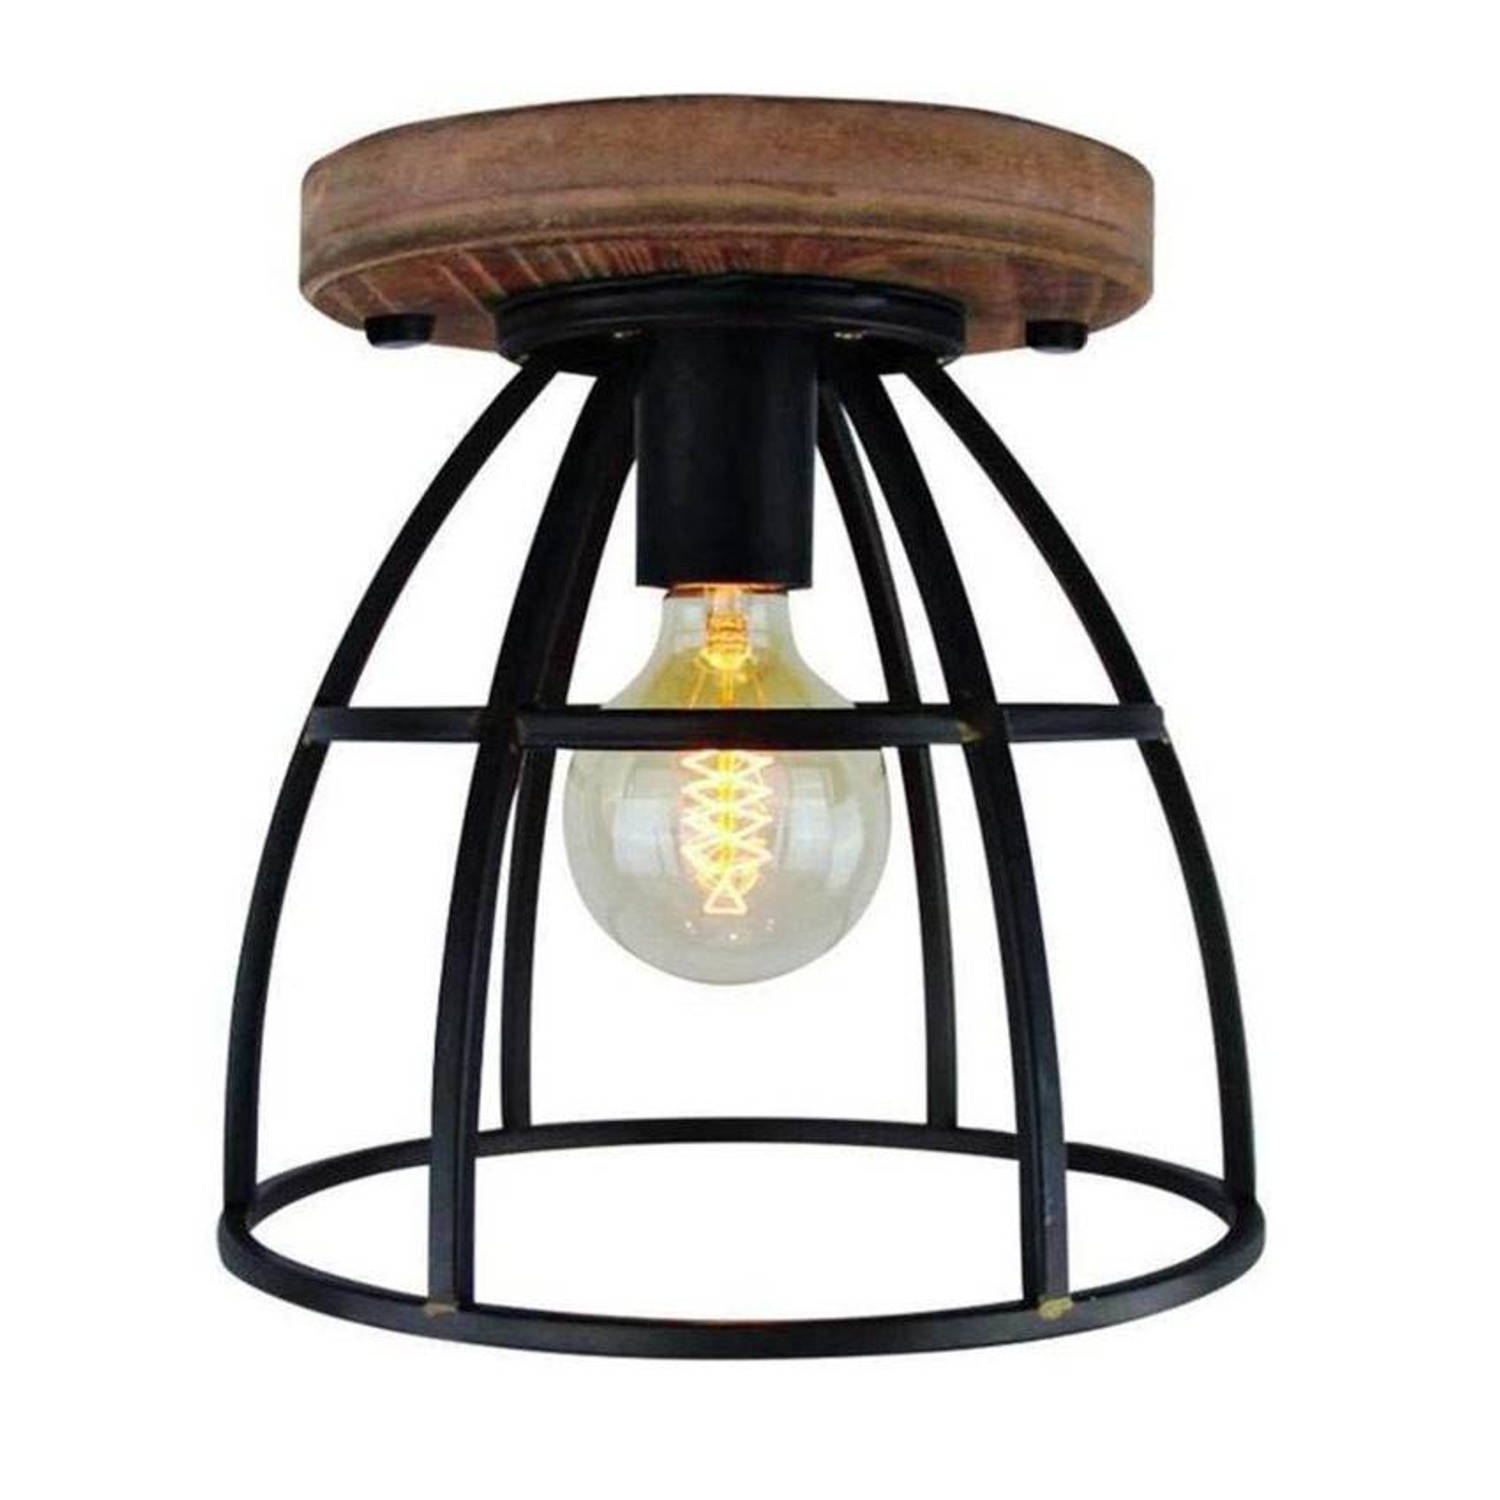 Freelight Plafondlamp Birdy groot